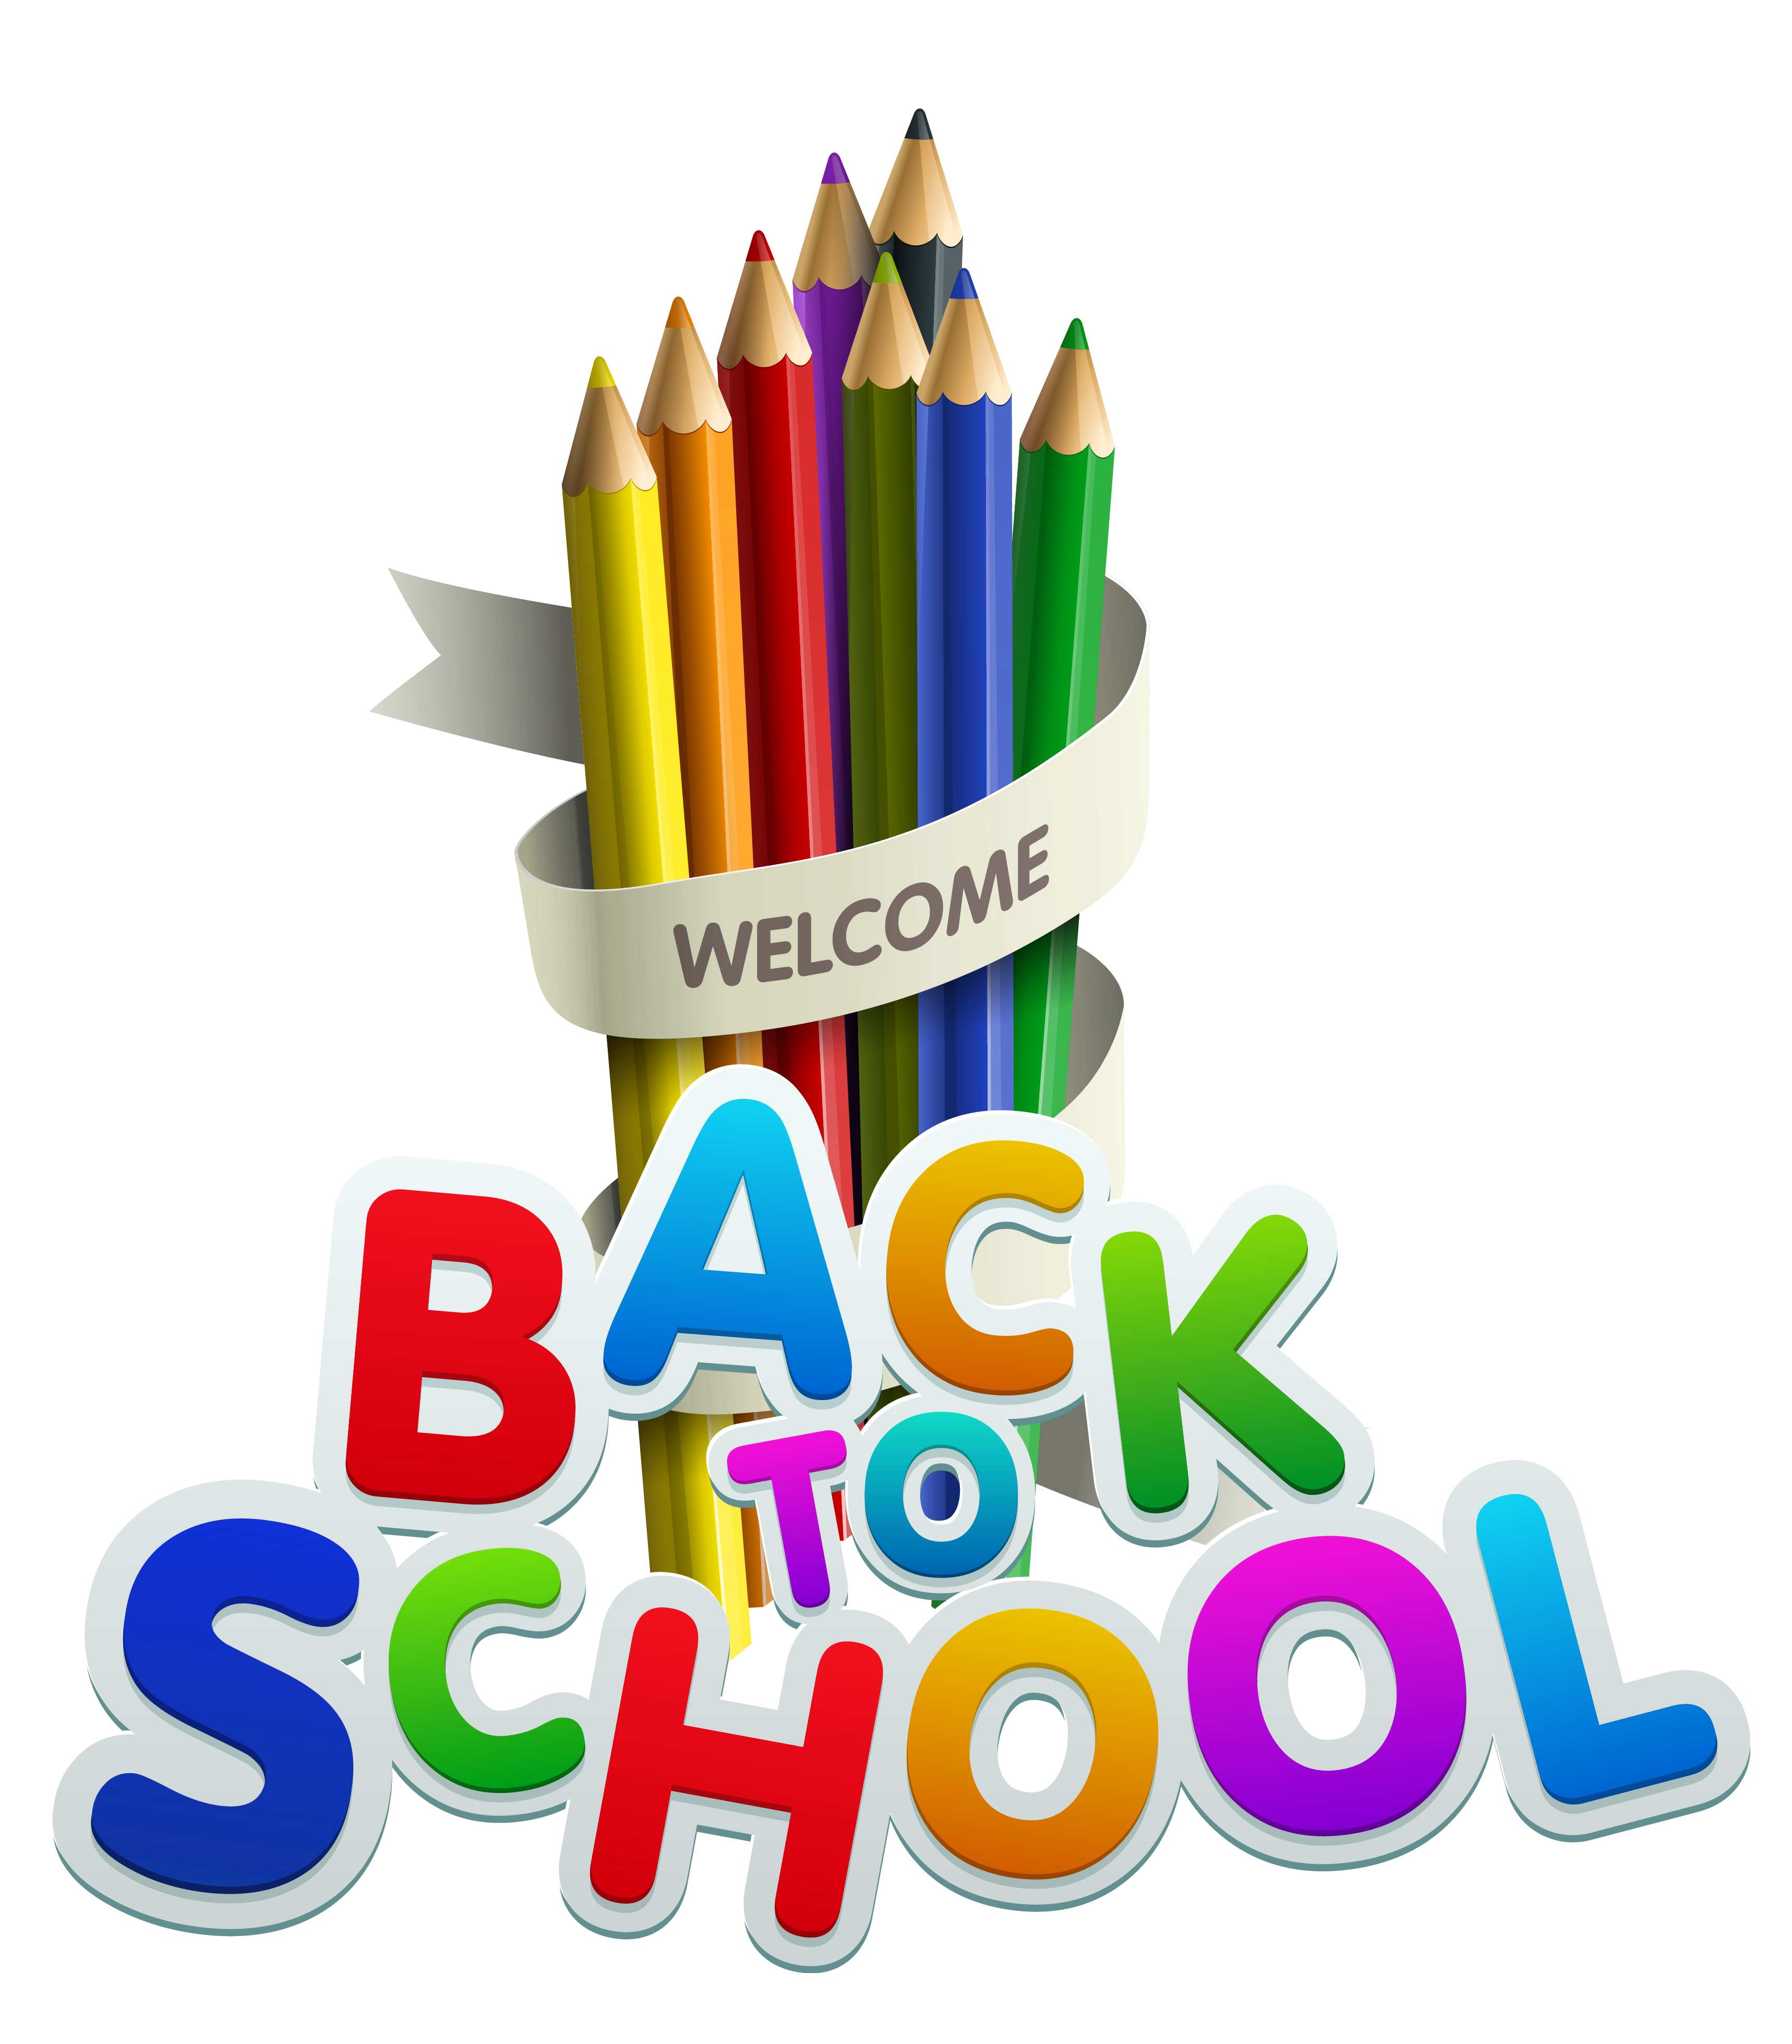 Welcome back to school clip art clipartfest